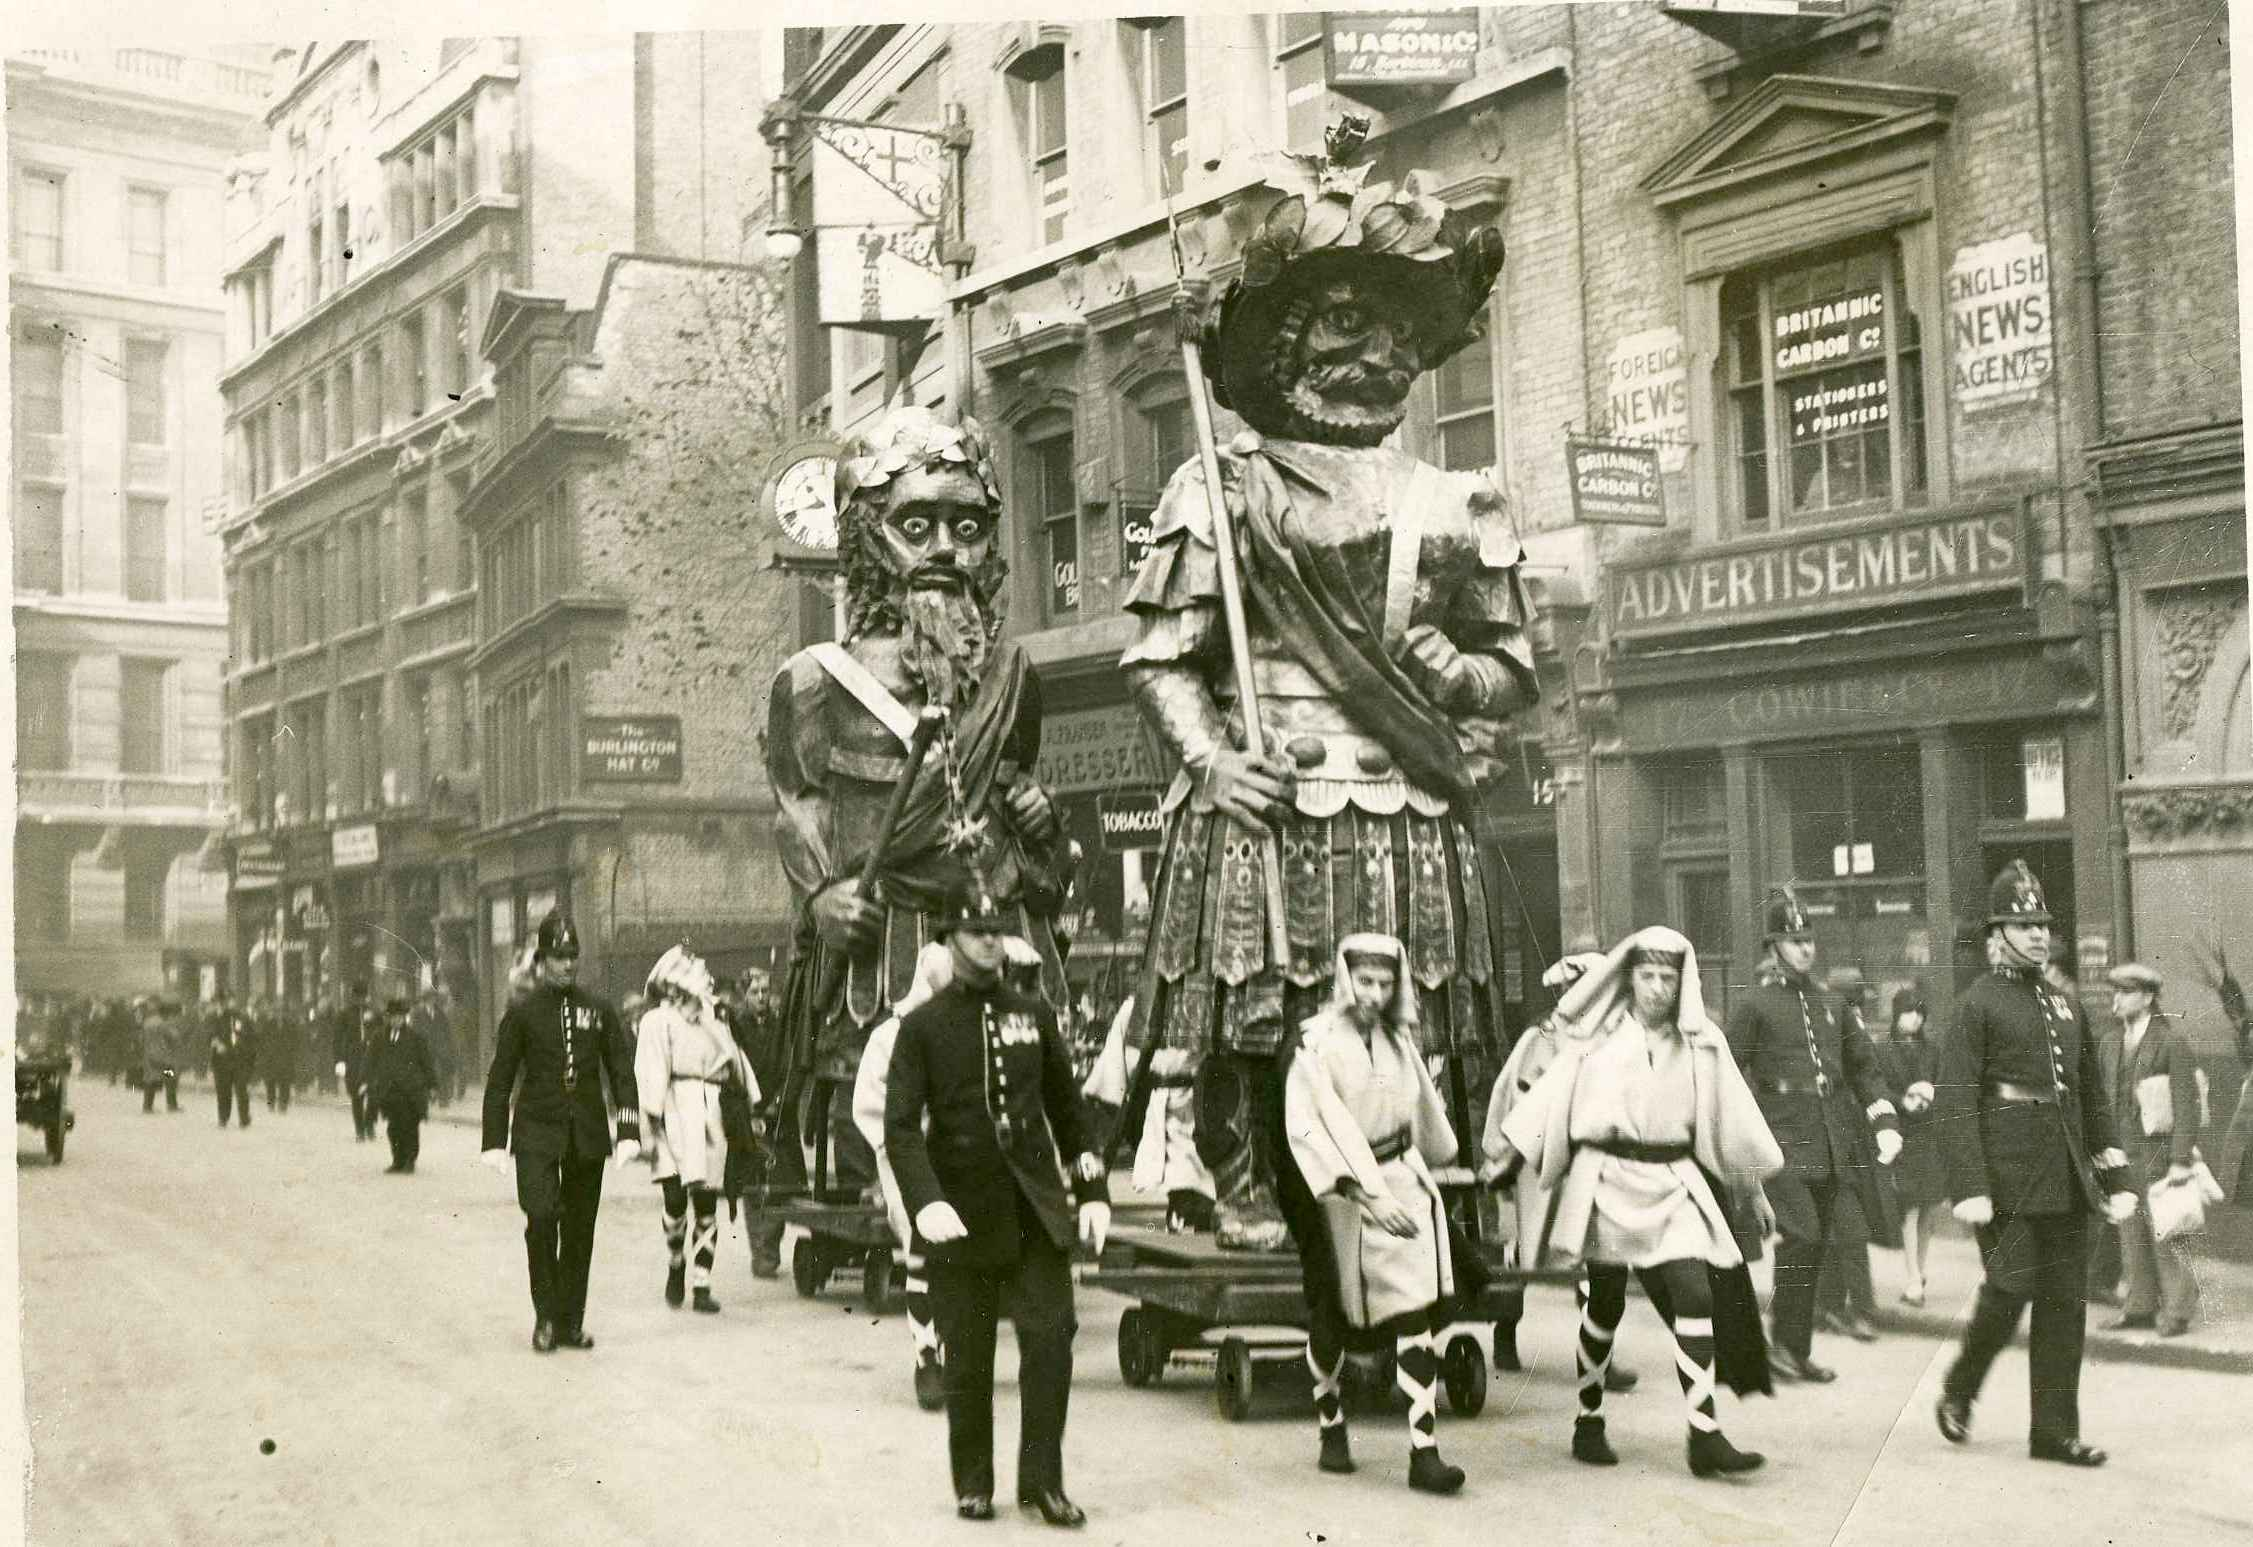 Men in fancy dress wheeling large statues through the streets of London in 1928